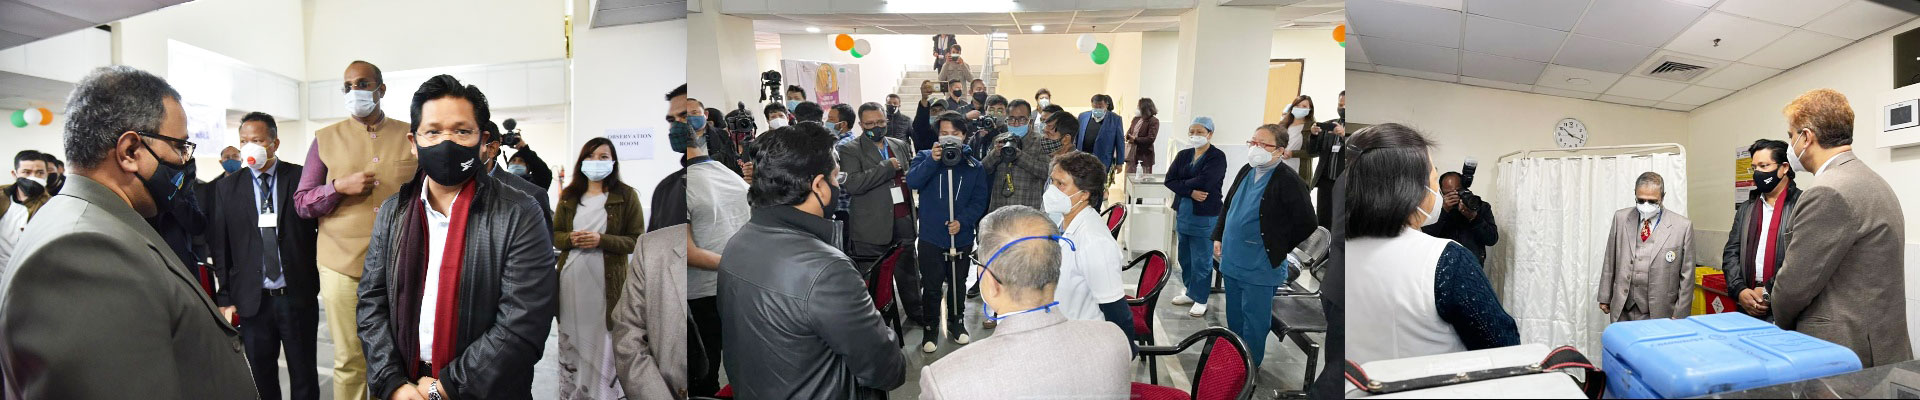 CM_Launched_Largest_Vaccine_Drive